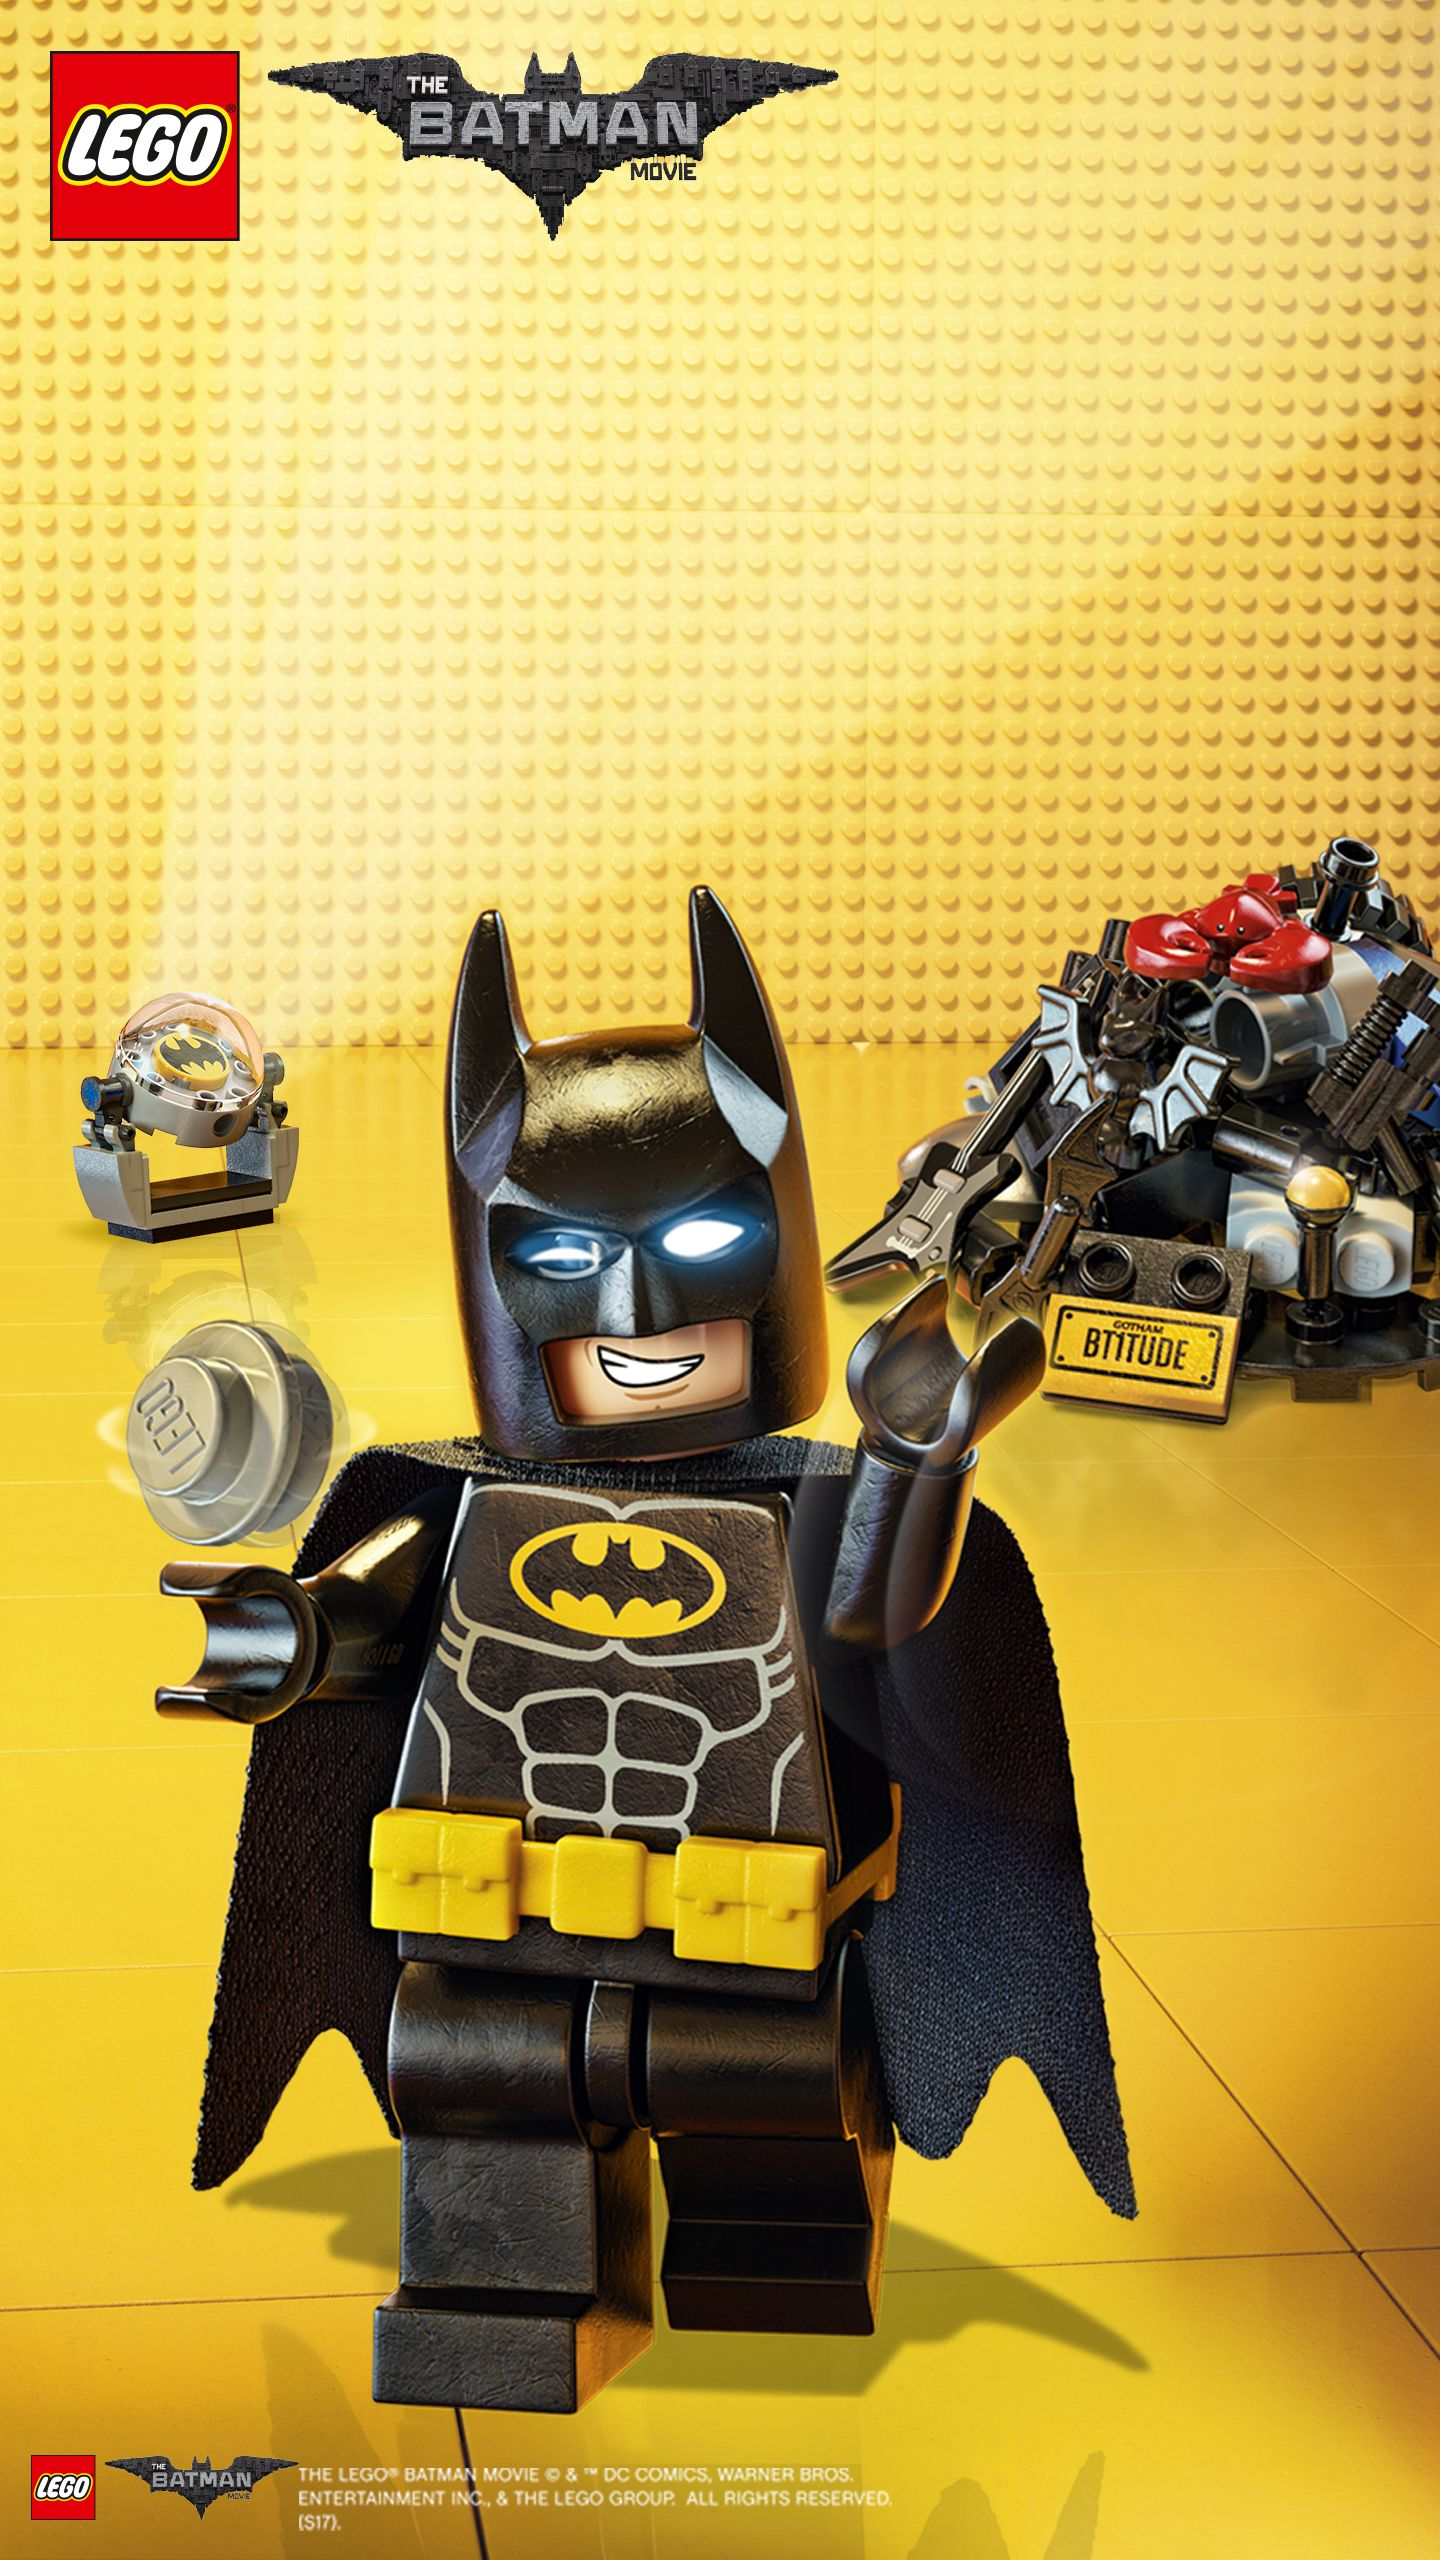 Build Something Batman Wallpaper Lego Batman Wallpaper Lego Wallpaper Lego Batman Movie